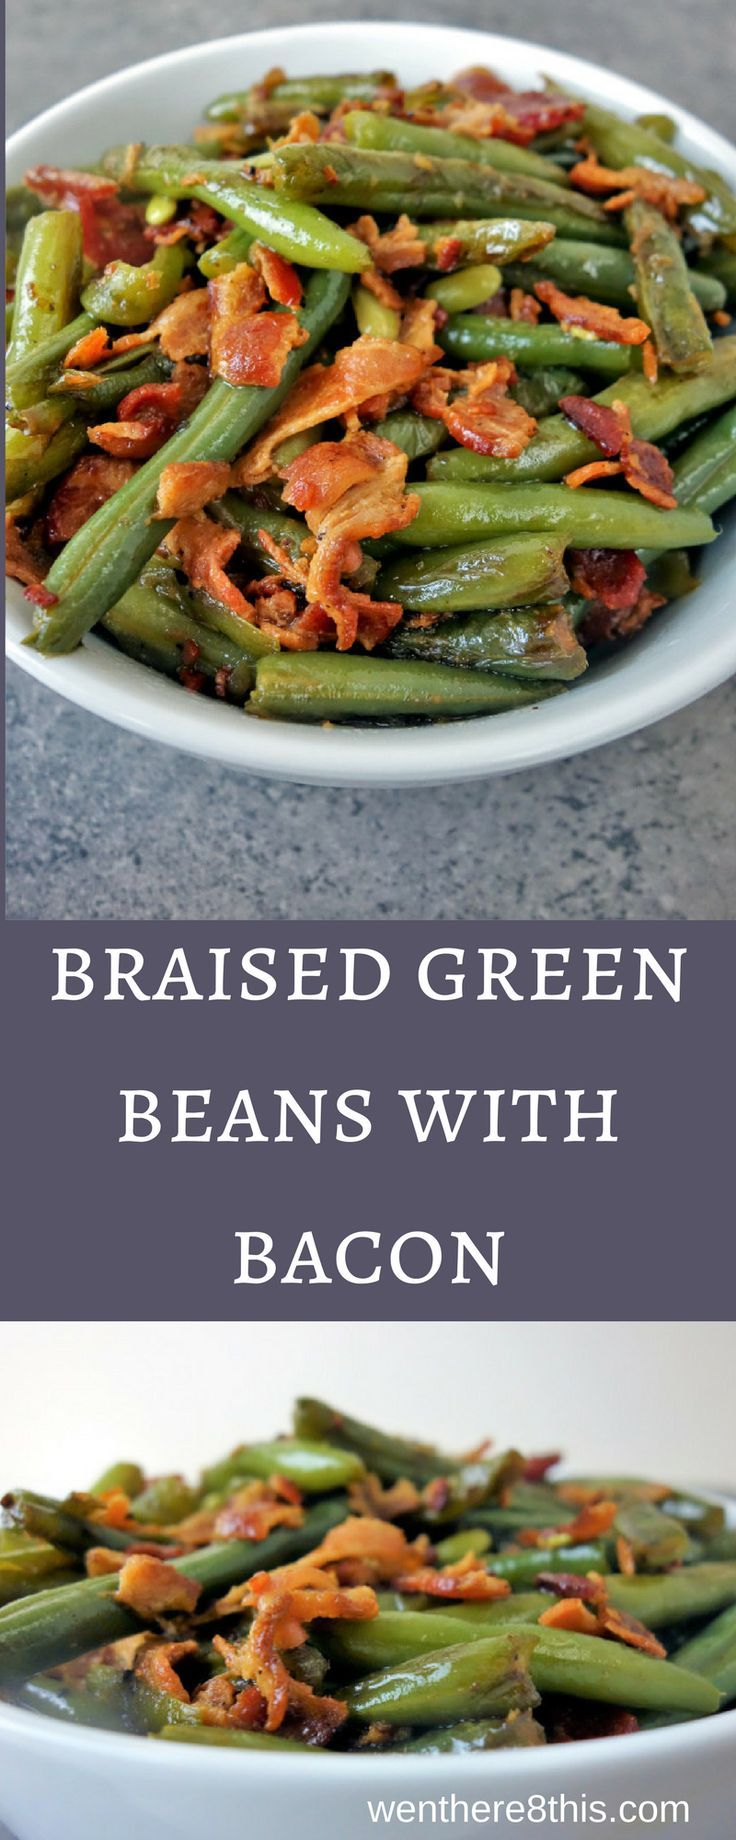 These tender Braised Green Beans with Bacon are super easy to make and great for those holiday potlucks, Thanksgiving Dinners, or any other time of the year! green beans recipes, easy green beans, green beans and bacon recipe, braised bacon green beans easy, bacon green beans braised recipe, vegetable side dish, bacon recipes, braised green beans recipe easy